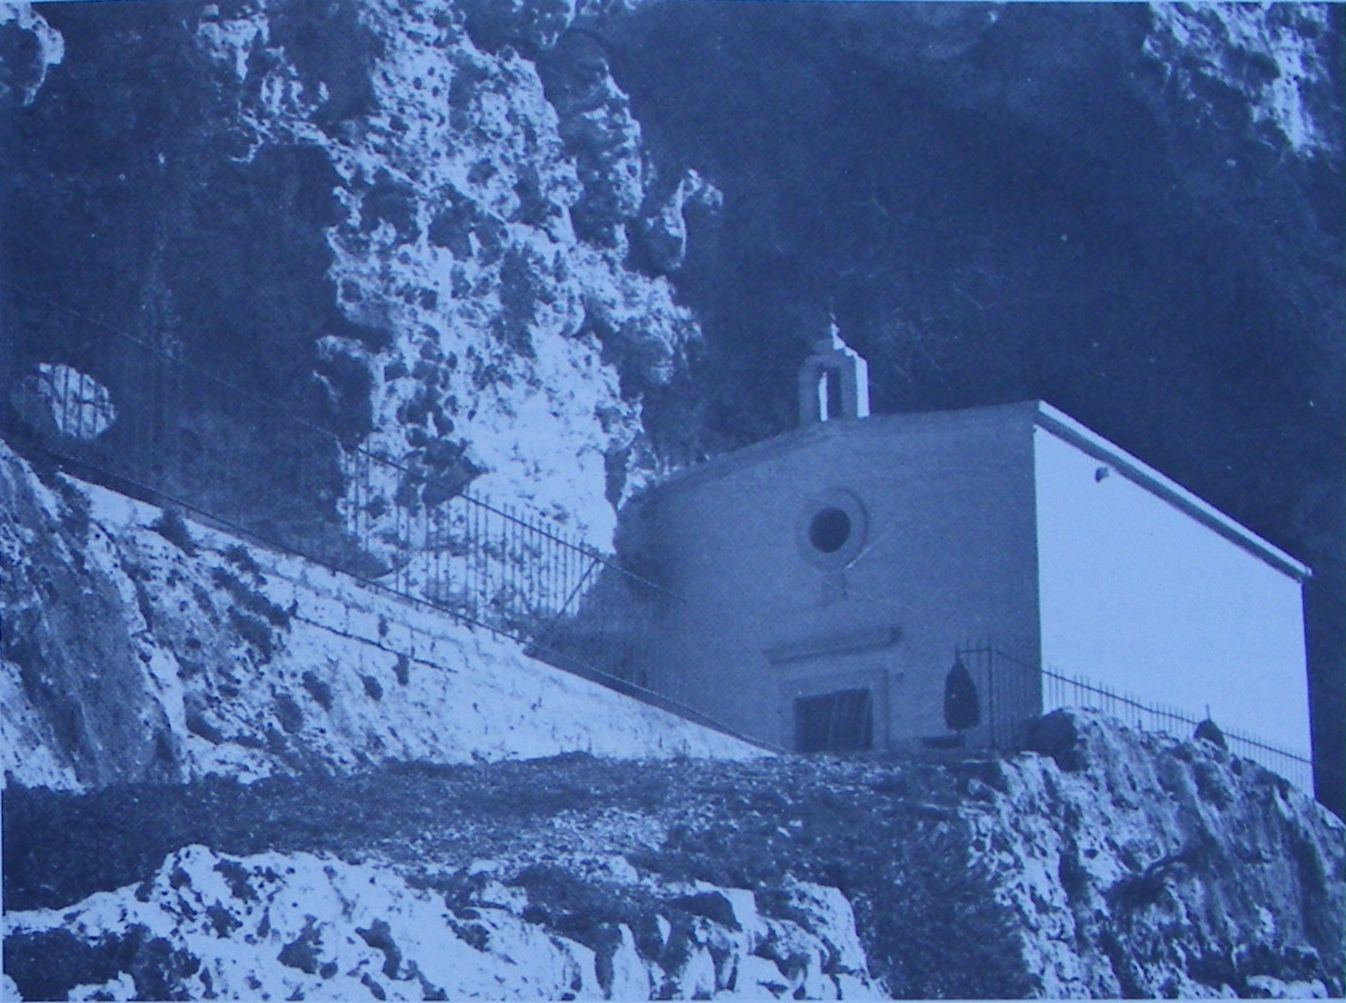 Church of St. Paul the Hermit from across the valley